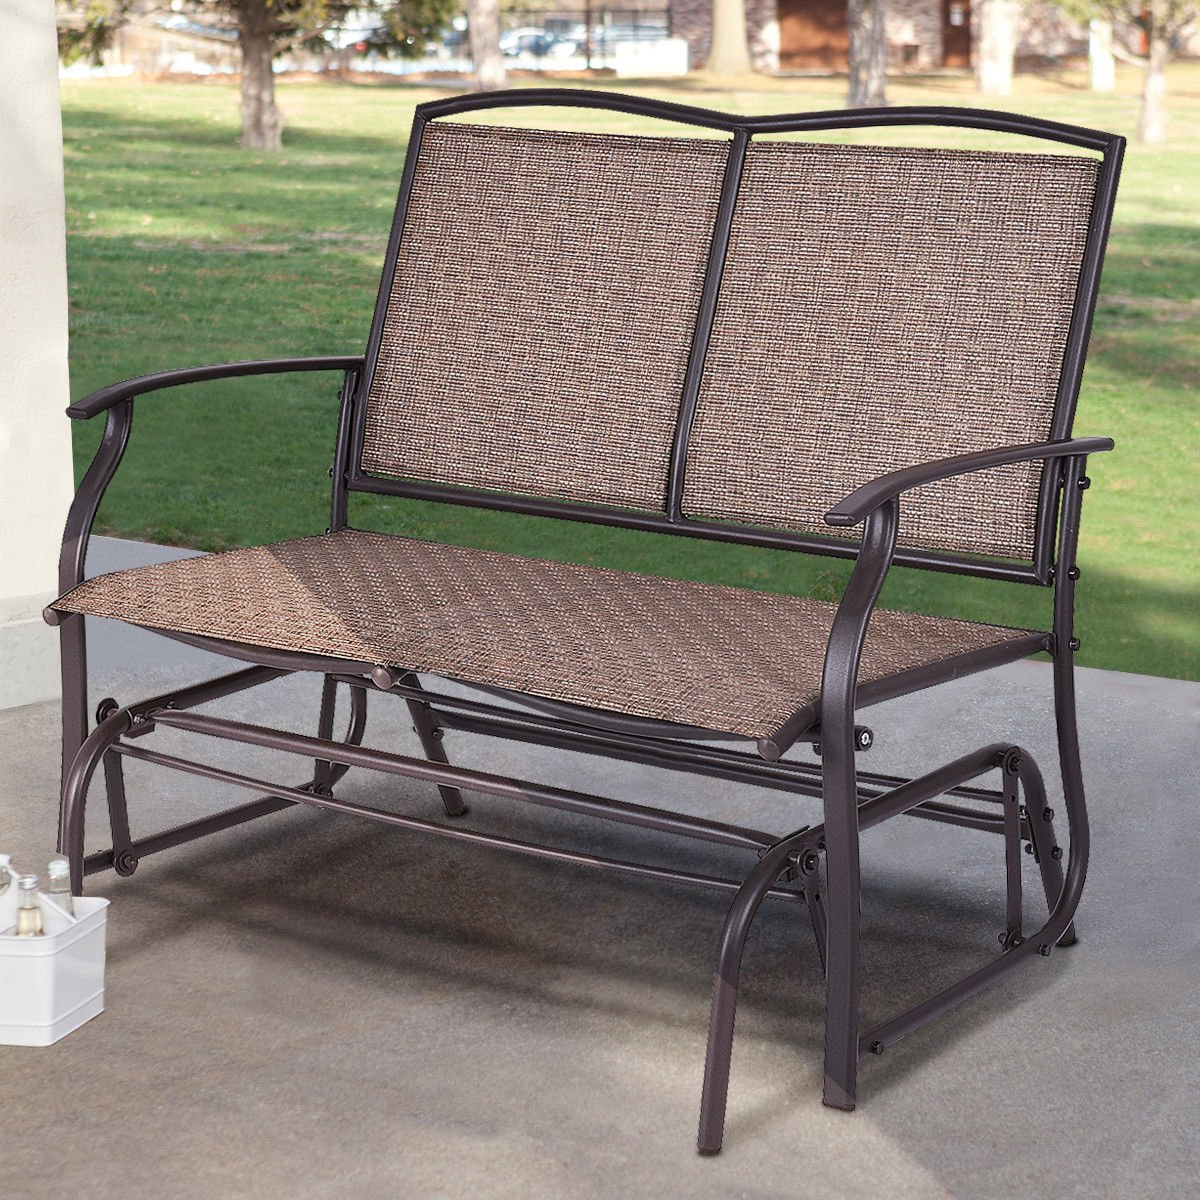 Amazon : Allblessings 2 Person Patio Glider Rocking Pertaining To Popular Aluminum Outdoor Double Glider Benches (View 8 of 30)